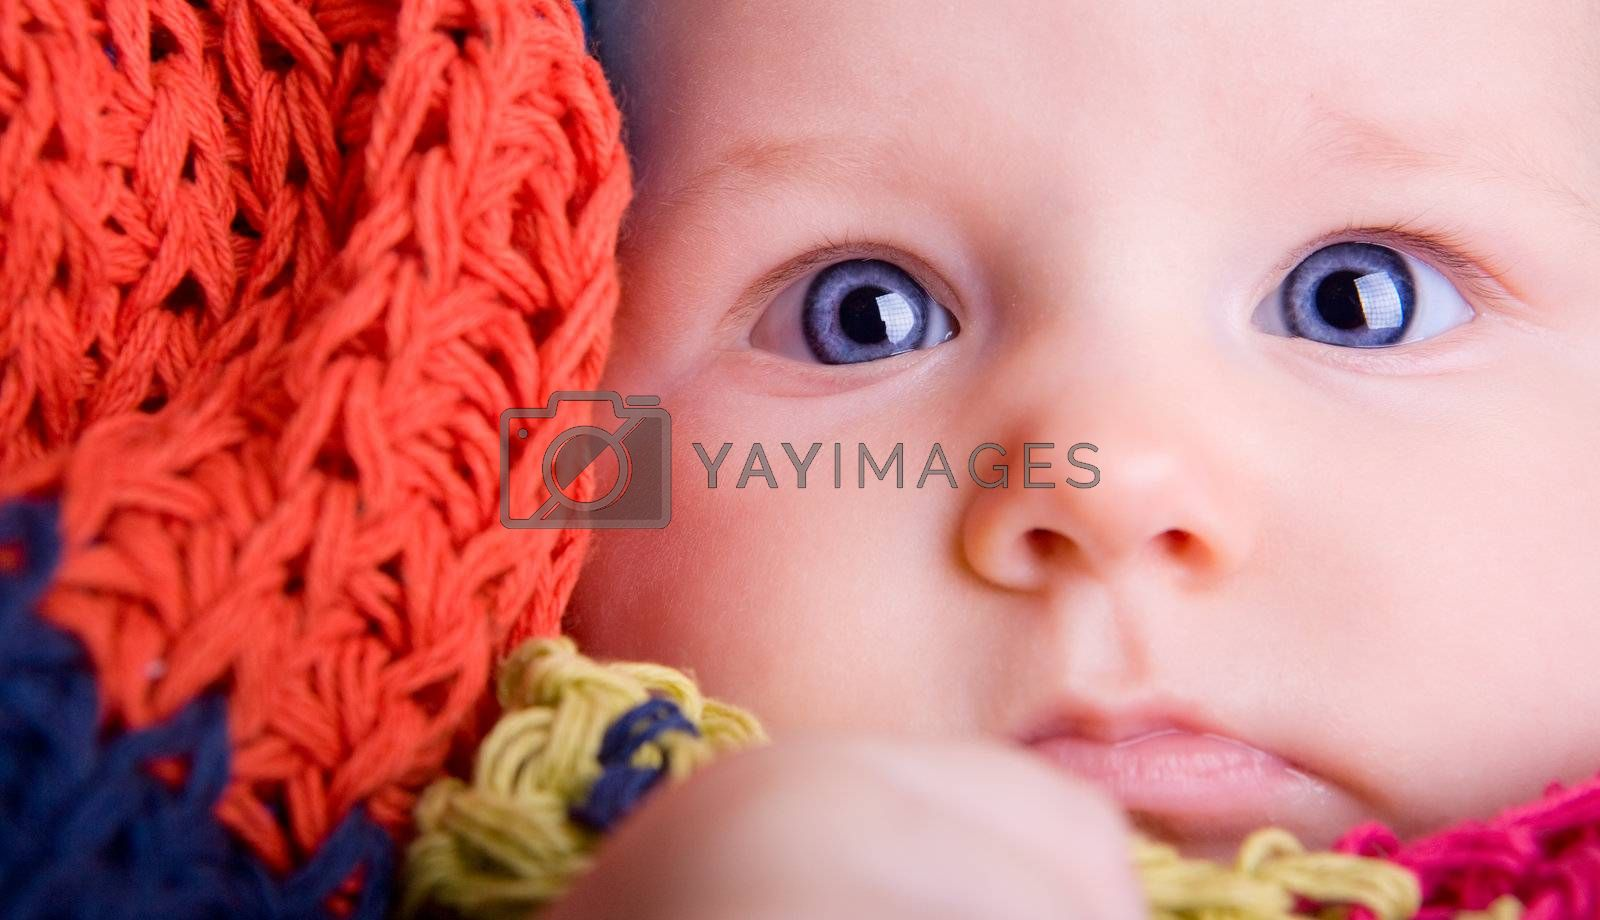 Portrait of three month old baby girl with big blue eyes